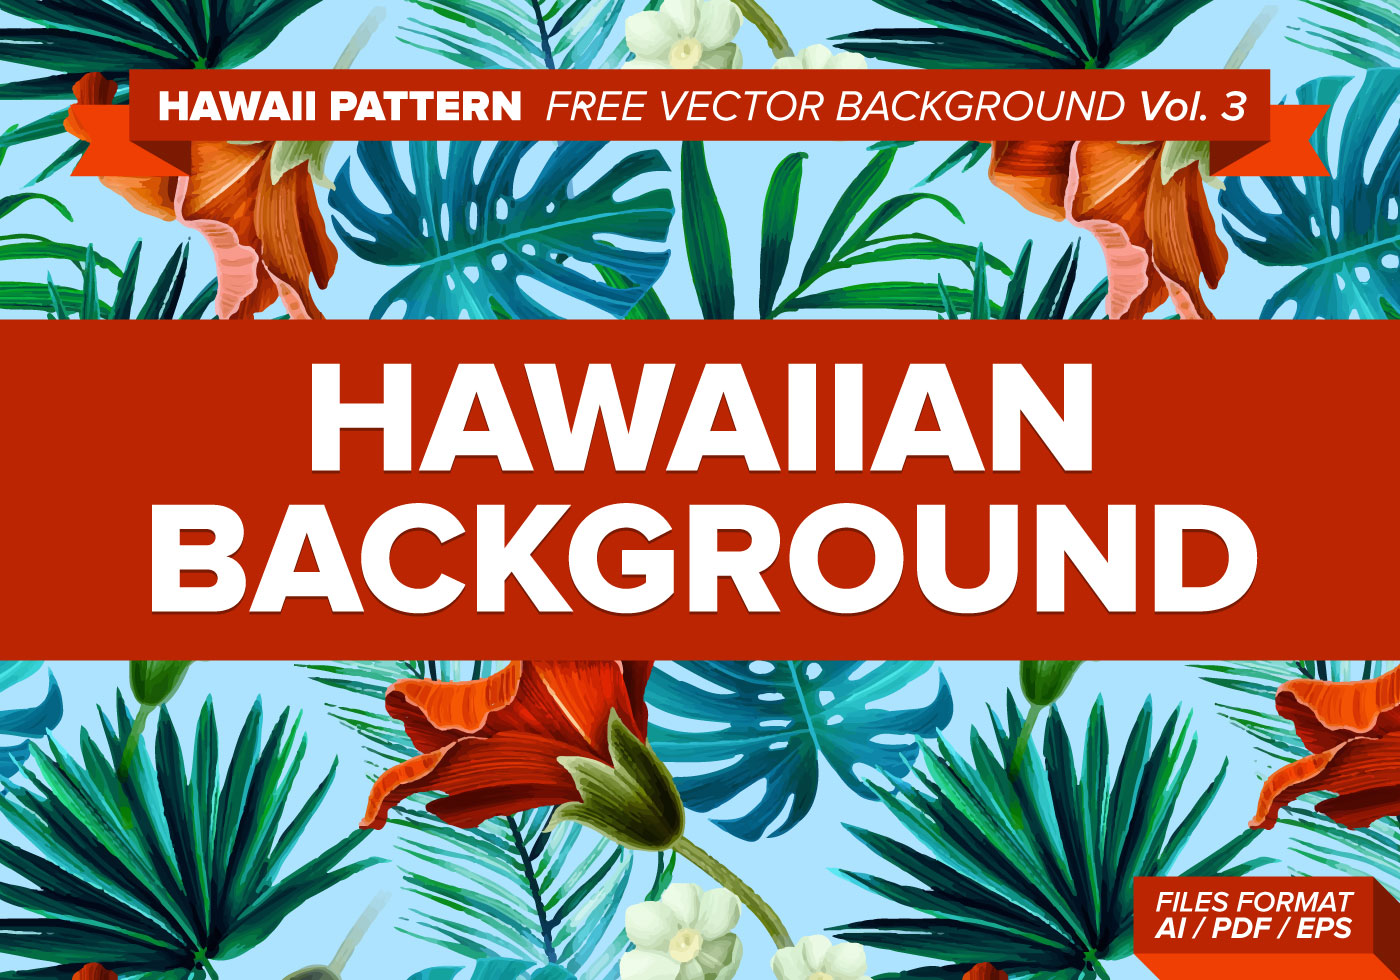 hawaiian pattern vector background vol 3 download free